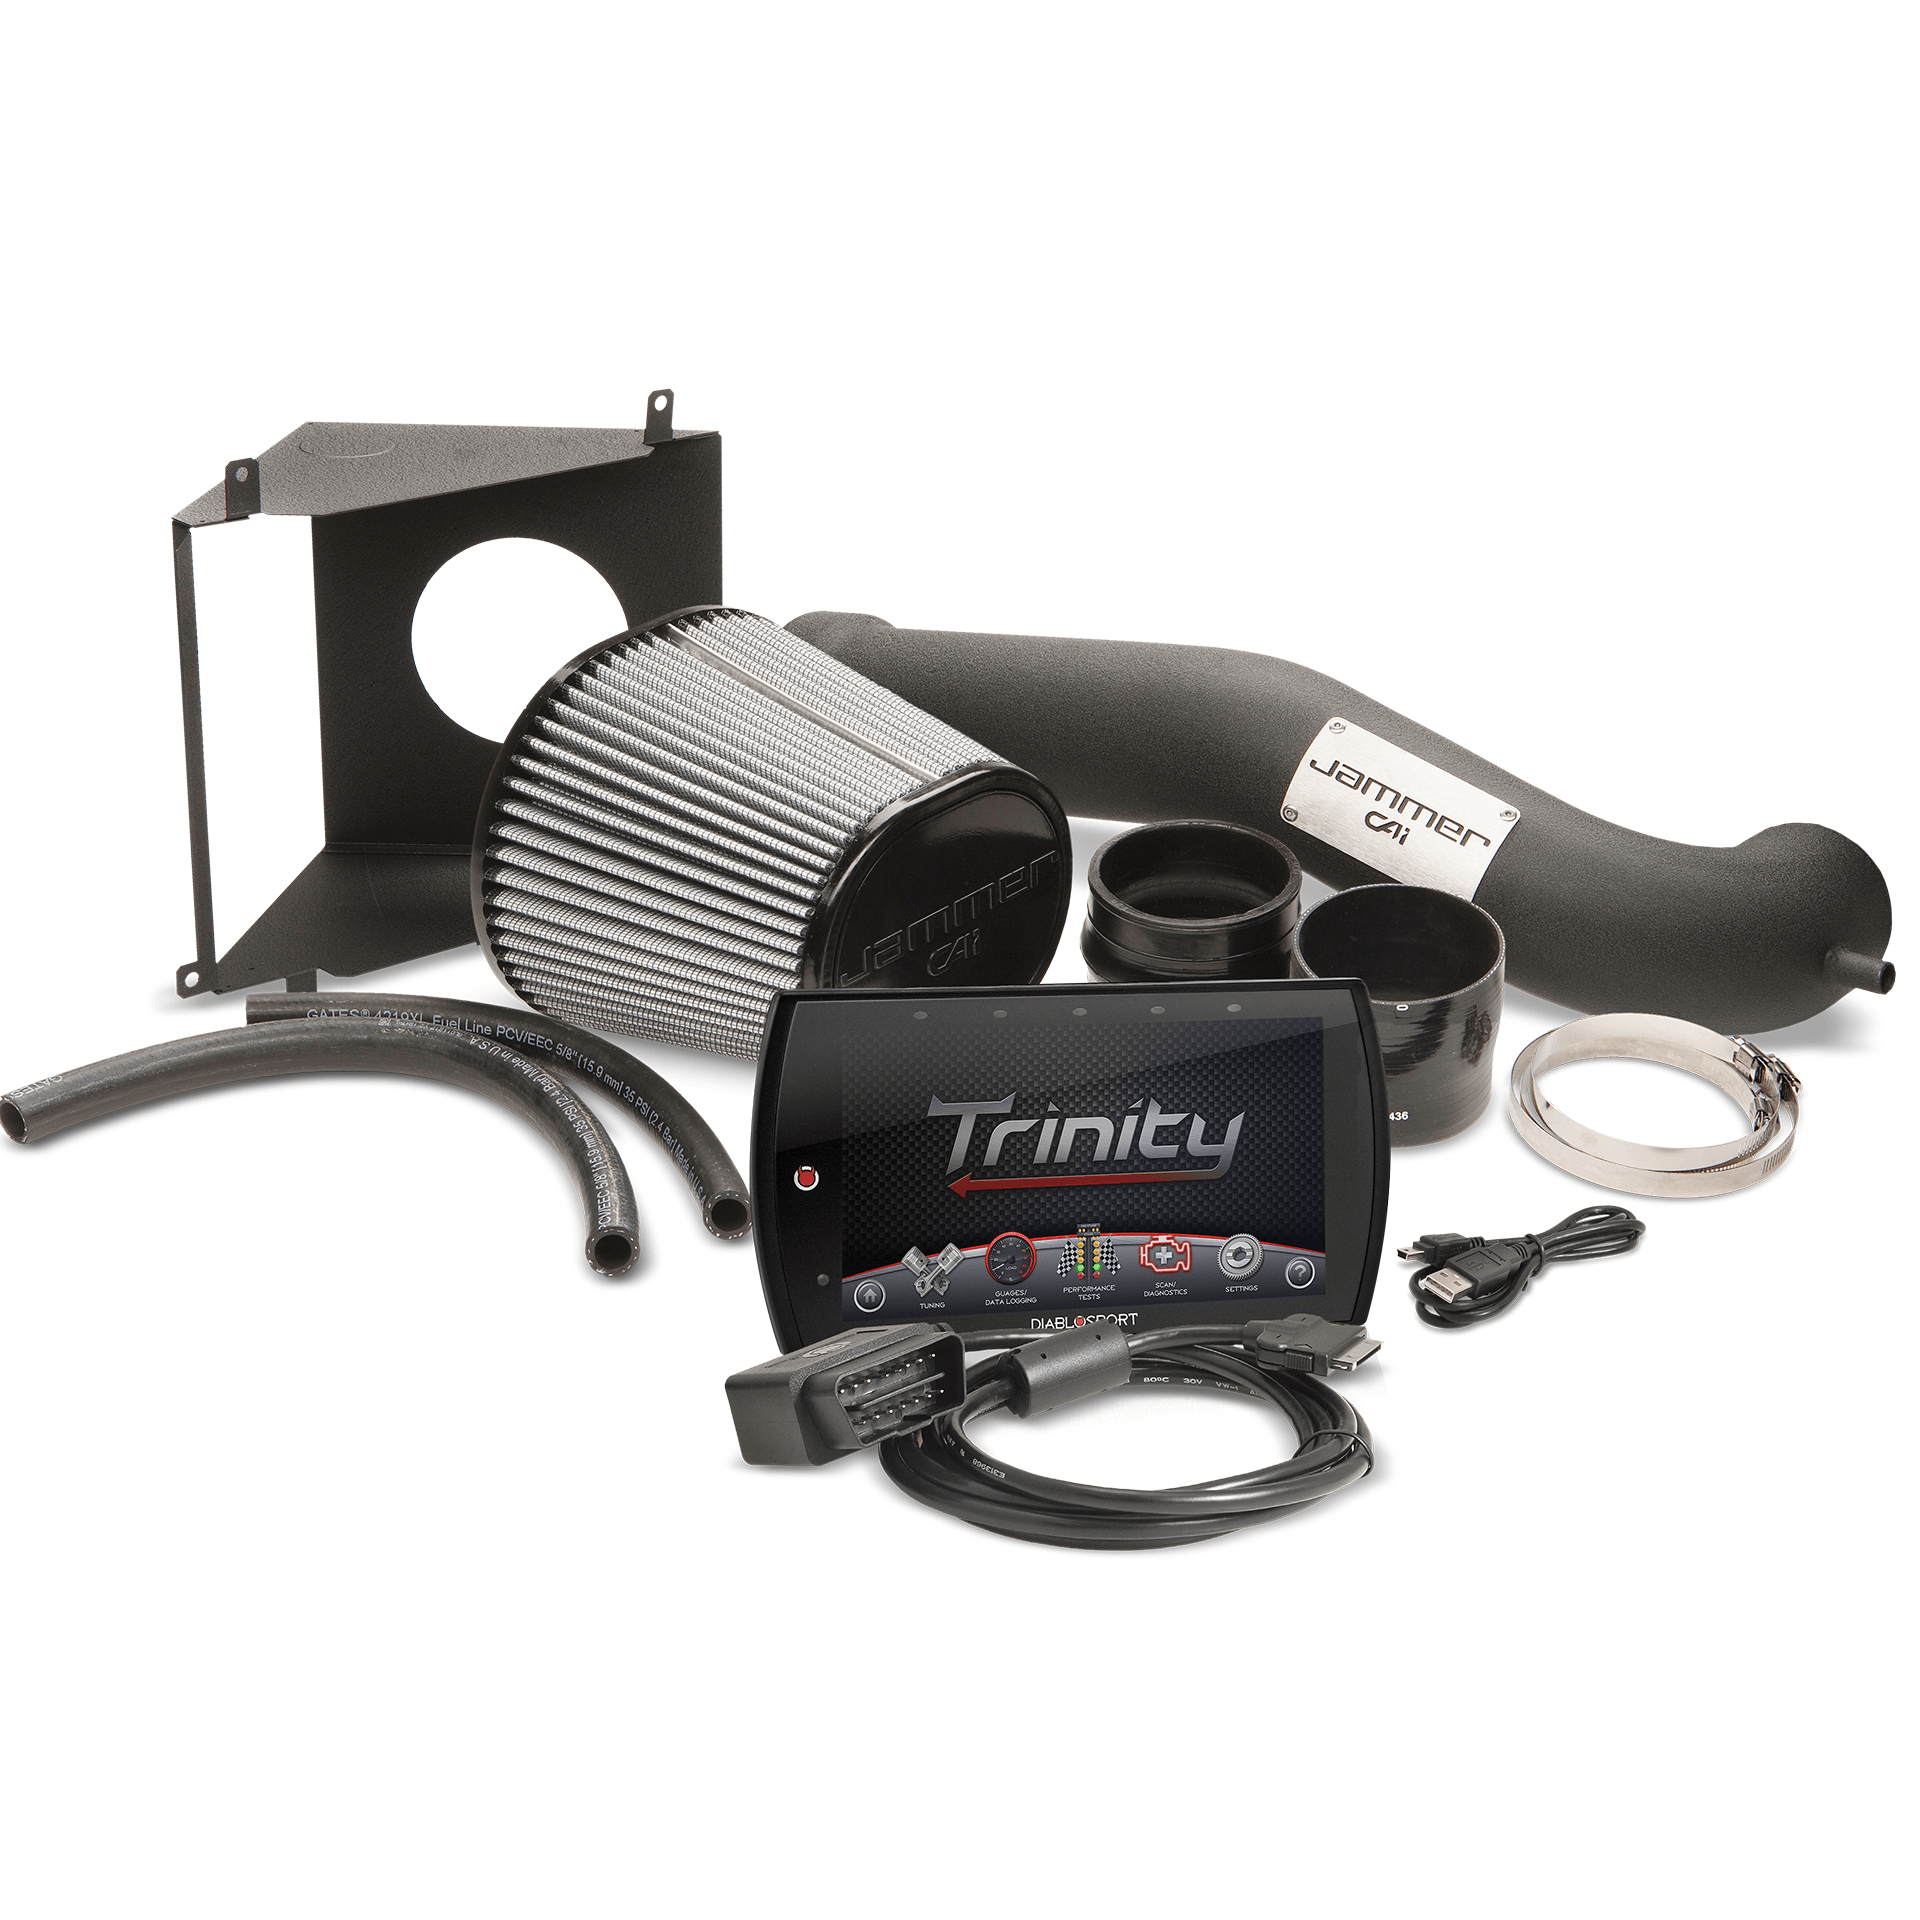 Dodge Challenger/Charger 11-14 5.7L Reaper Trinity 2 Stage 1 Kit